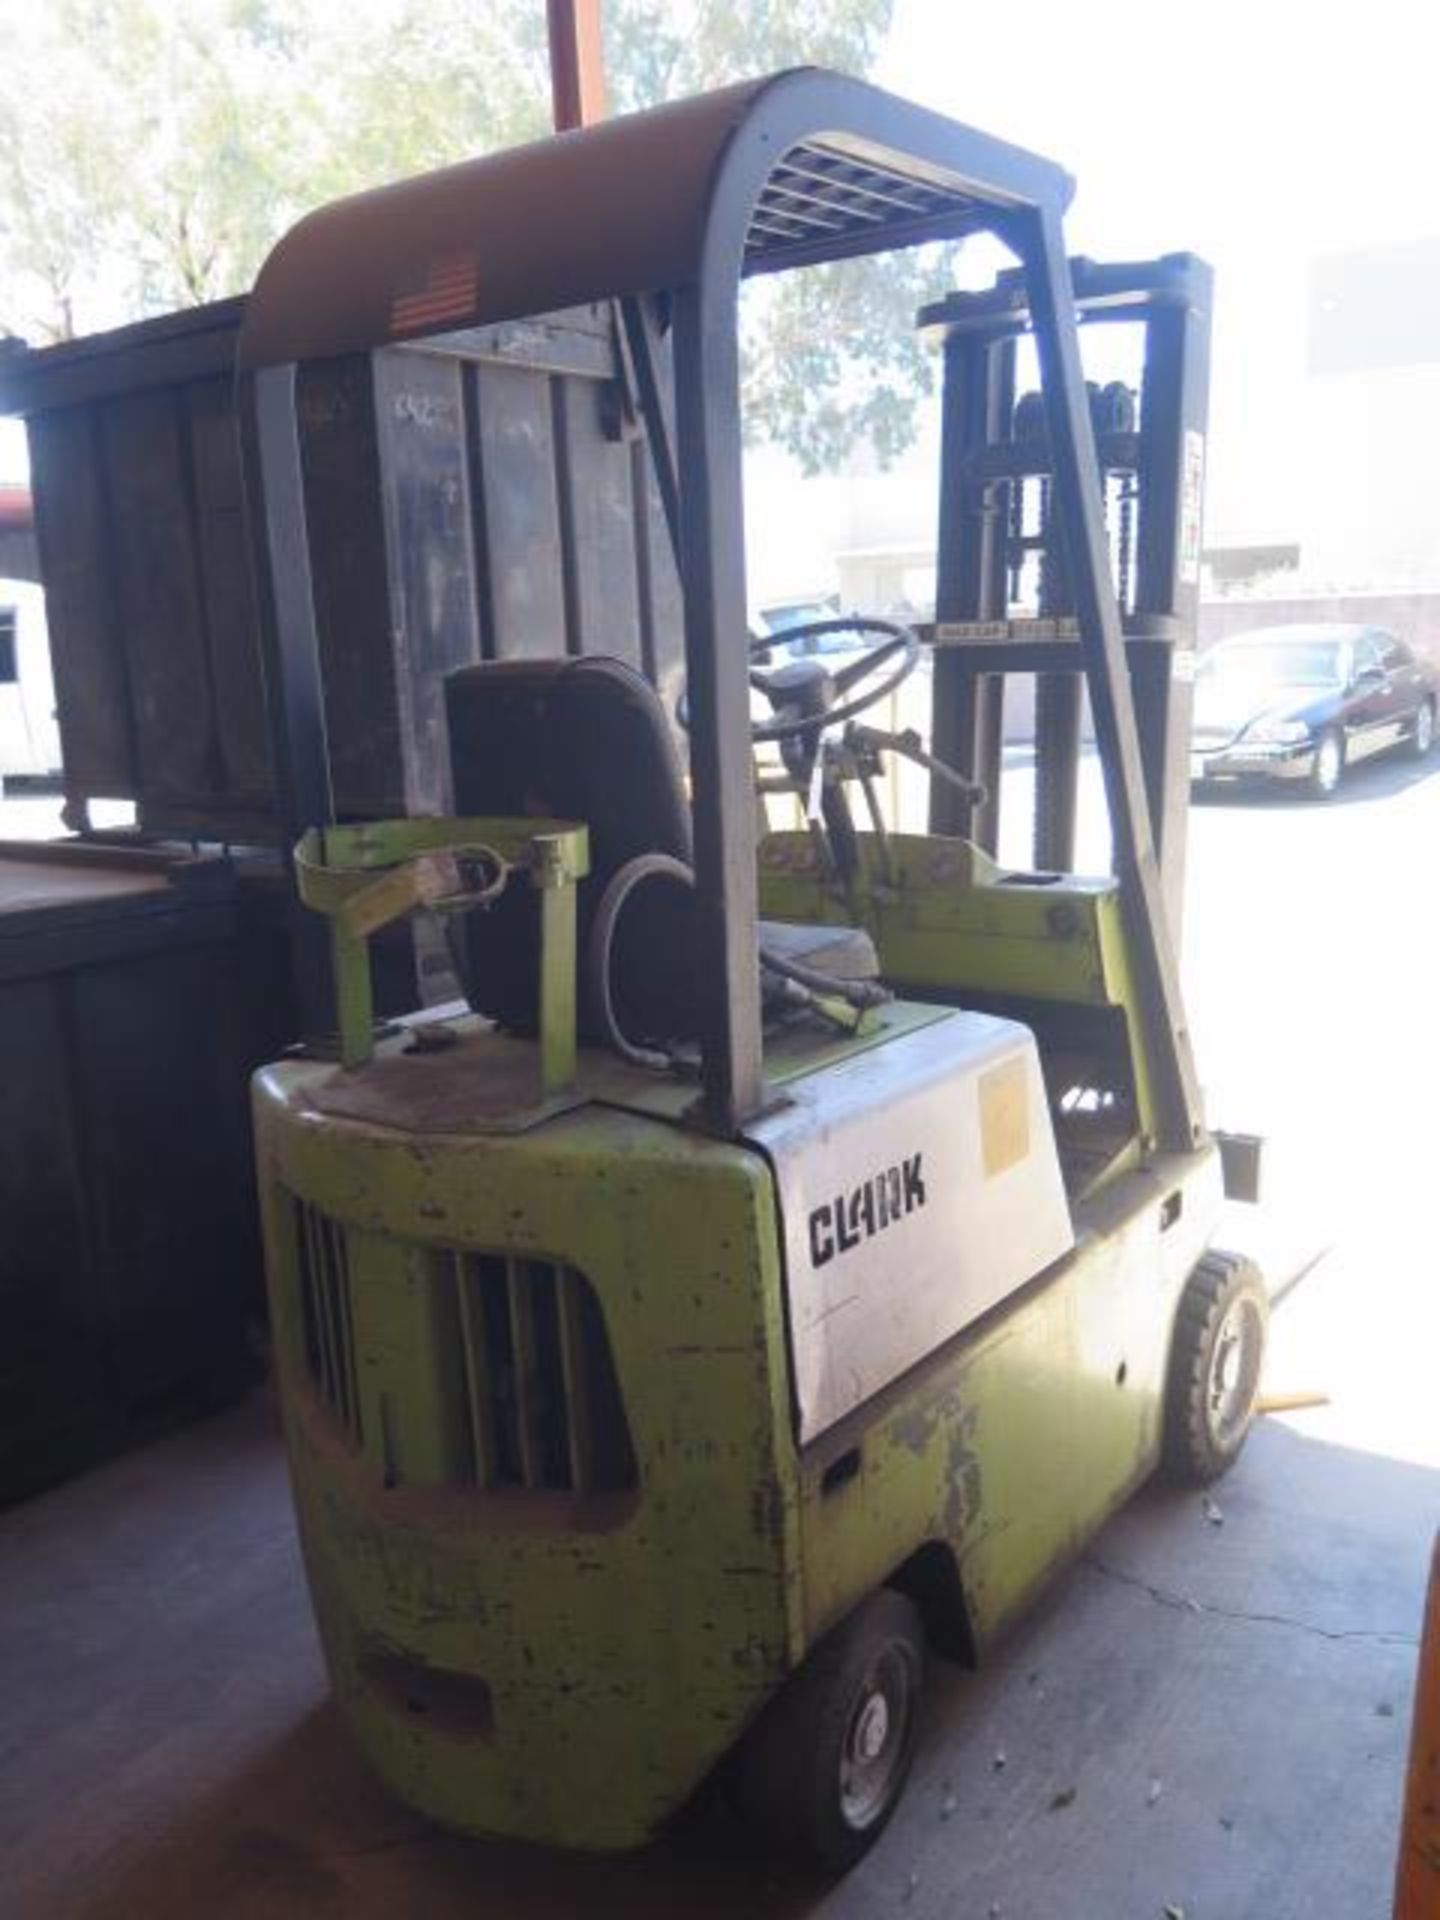 """Clark 2000 Lb Cap LPG Forklift w/ 2-Stage 130"""" Lift Height, (Condition Unknown), SOLD AS IS - Image 2 of 12"""